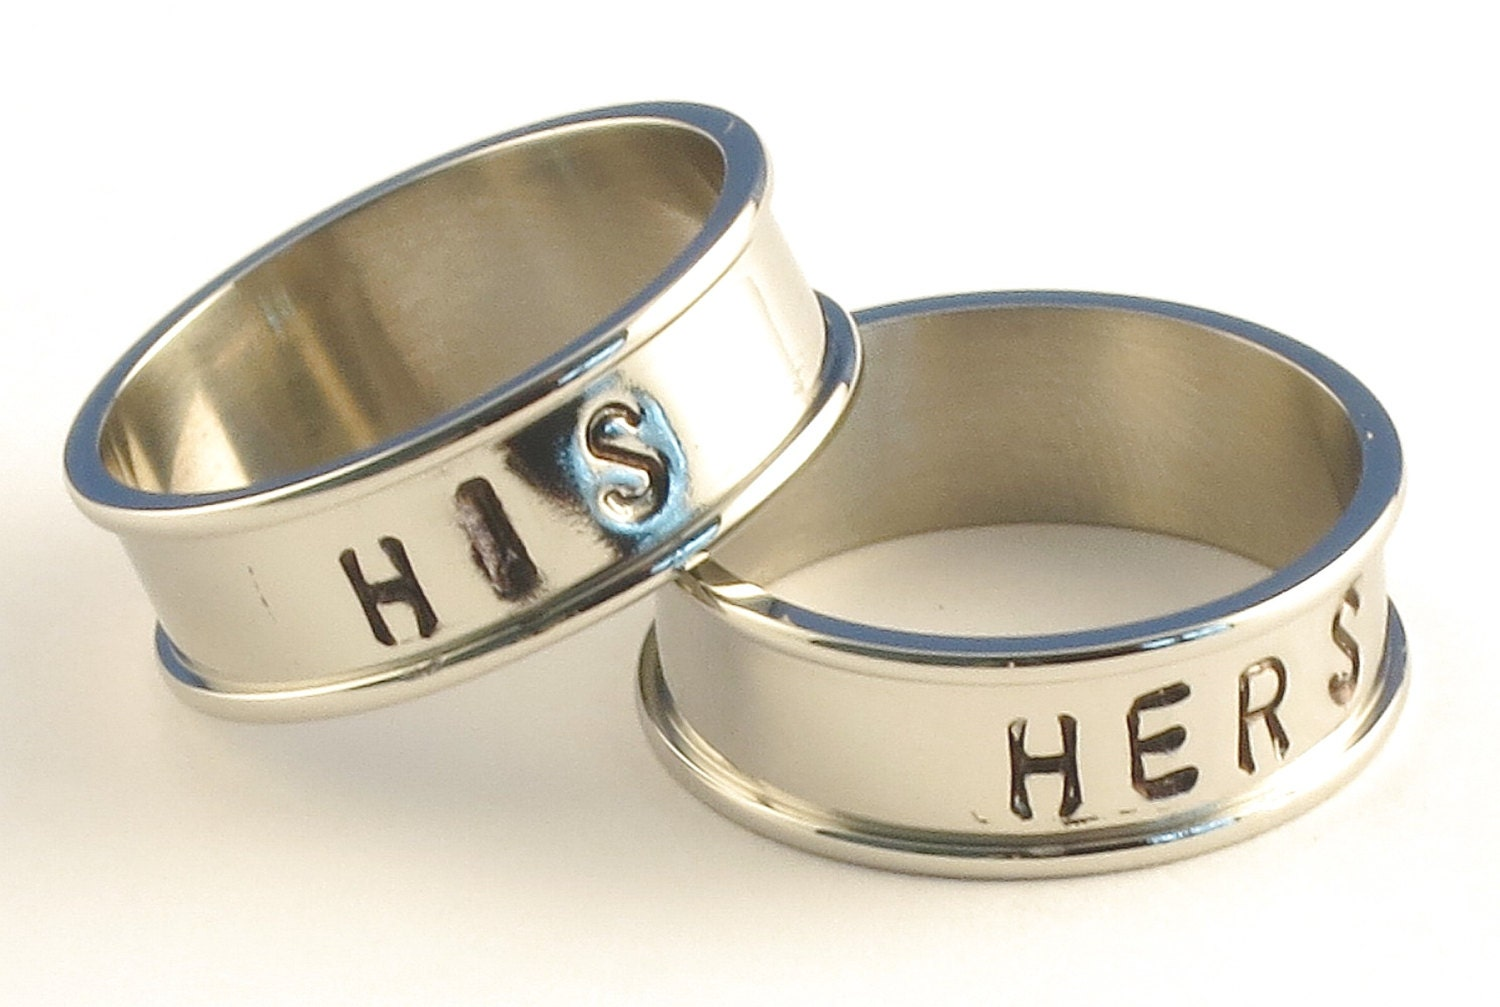 HIS and HERS - Couples Stainless Steel Channel Band Name Ring 7mm - Available in Ring Sizes 3-14